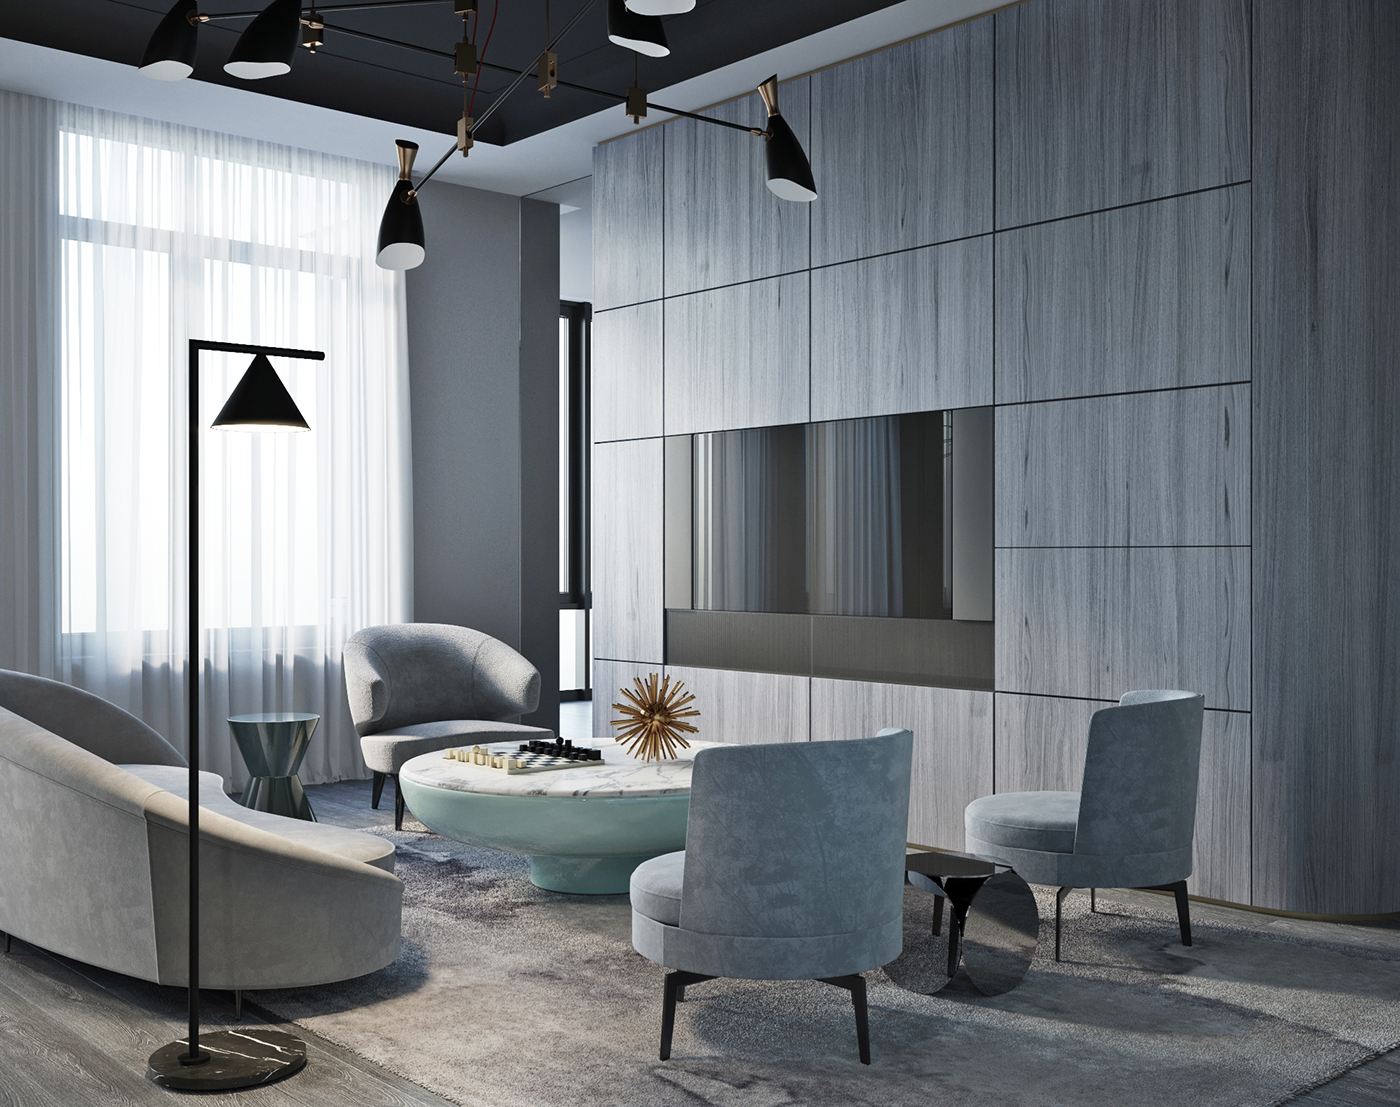 Shades Of Gray Modern Interior Design In Moscow! 2 shades of gray Shades Of Gray: Modern Interior Design In Moscow! Shades Of Gray Modern Interior Design In Moscow 2